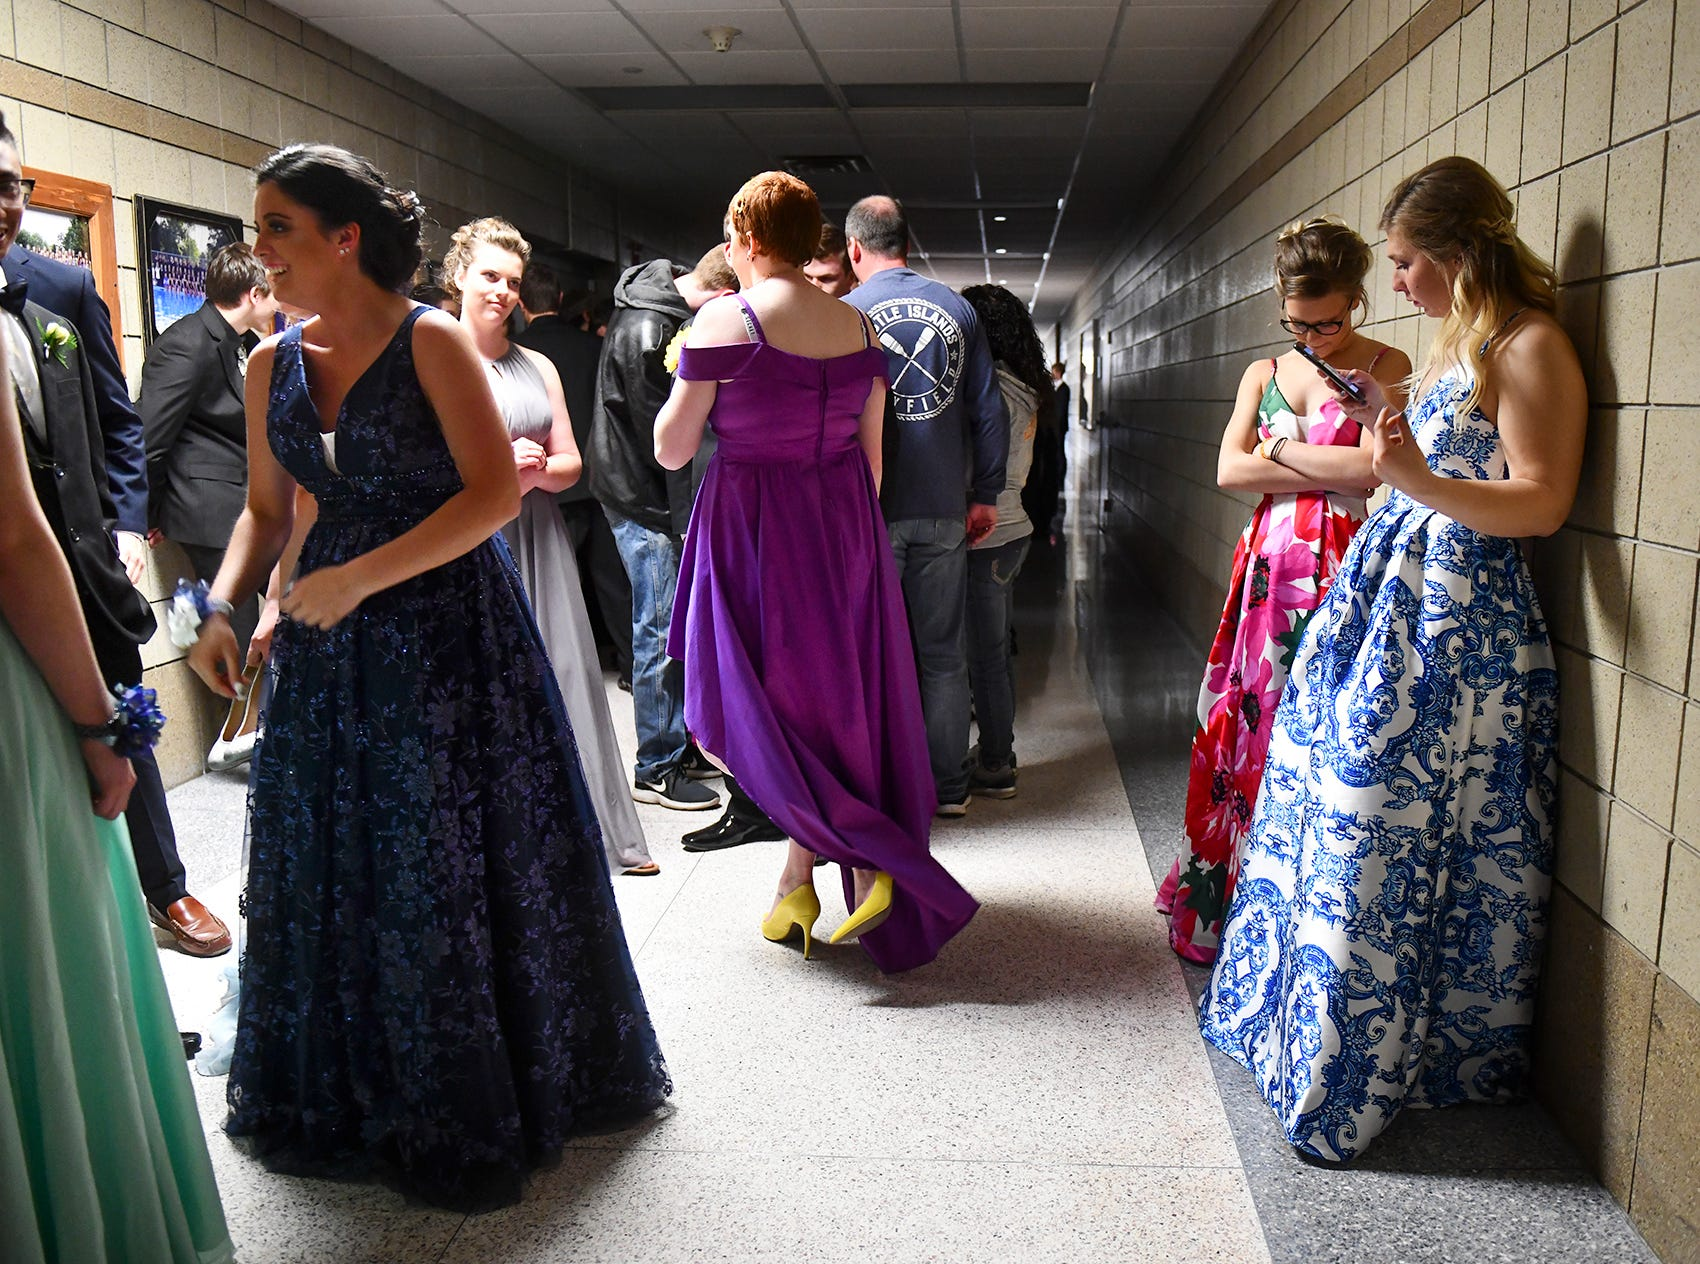 Couples wait their turn for prom grand march Saturday, April 27, at Foley High School.